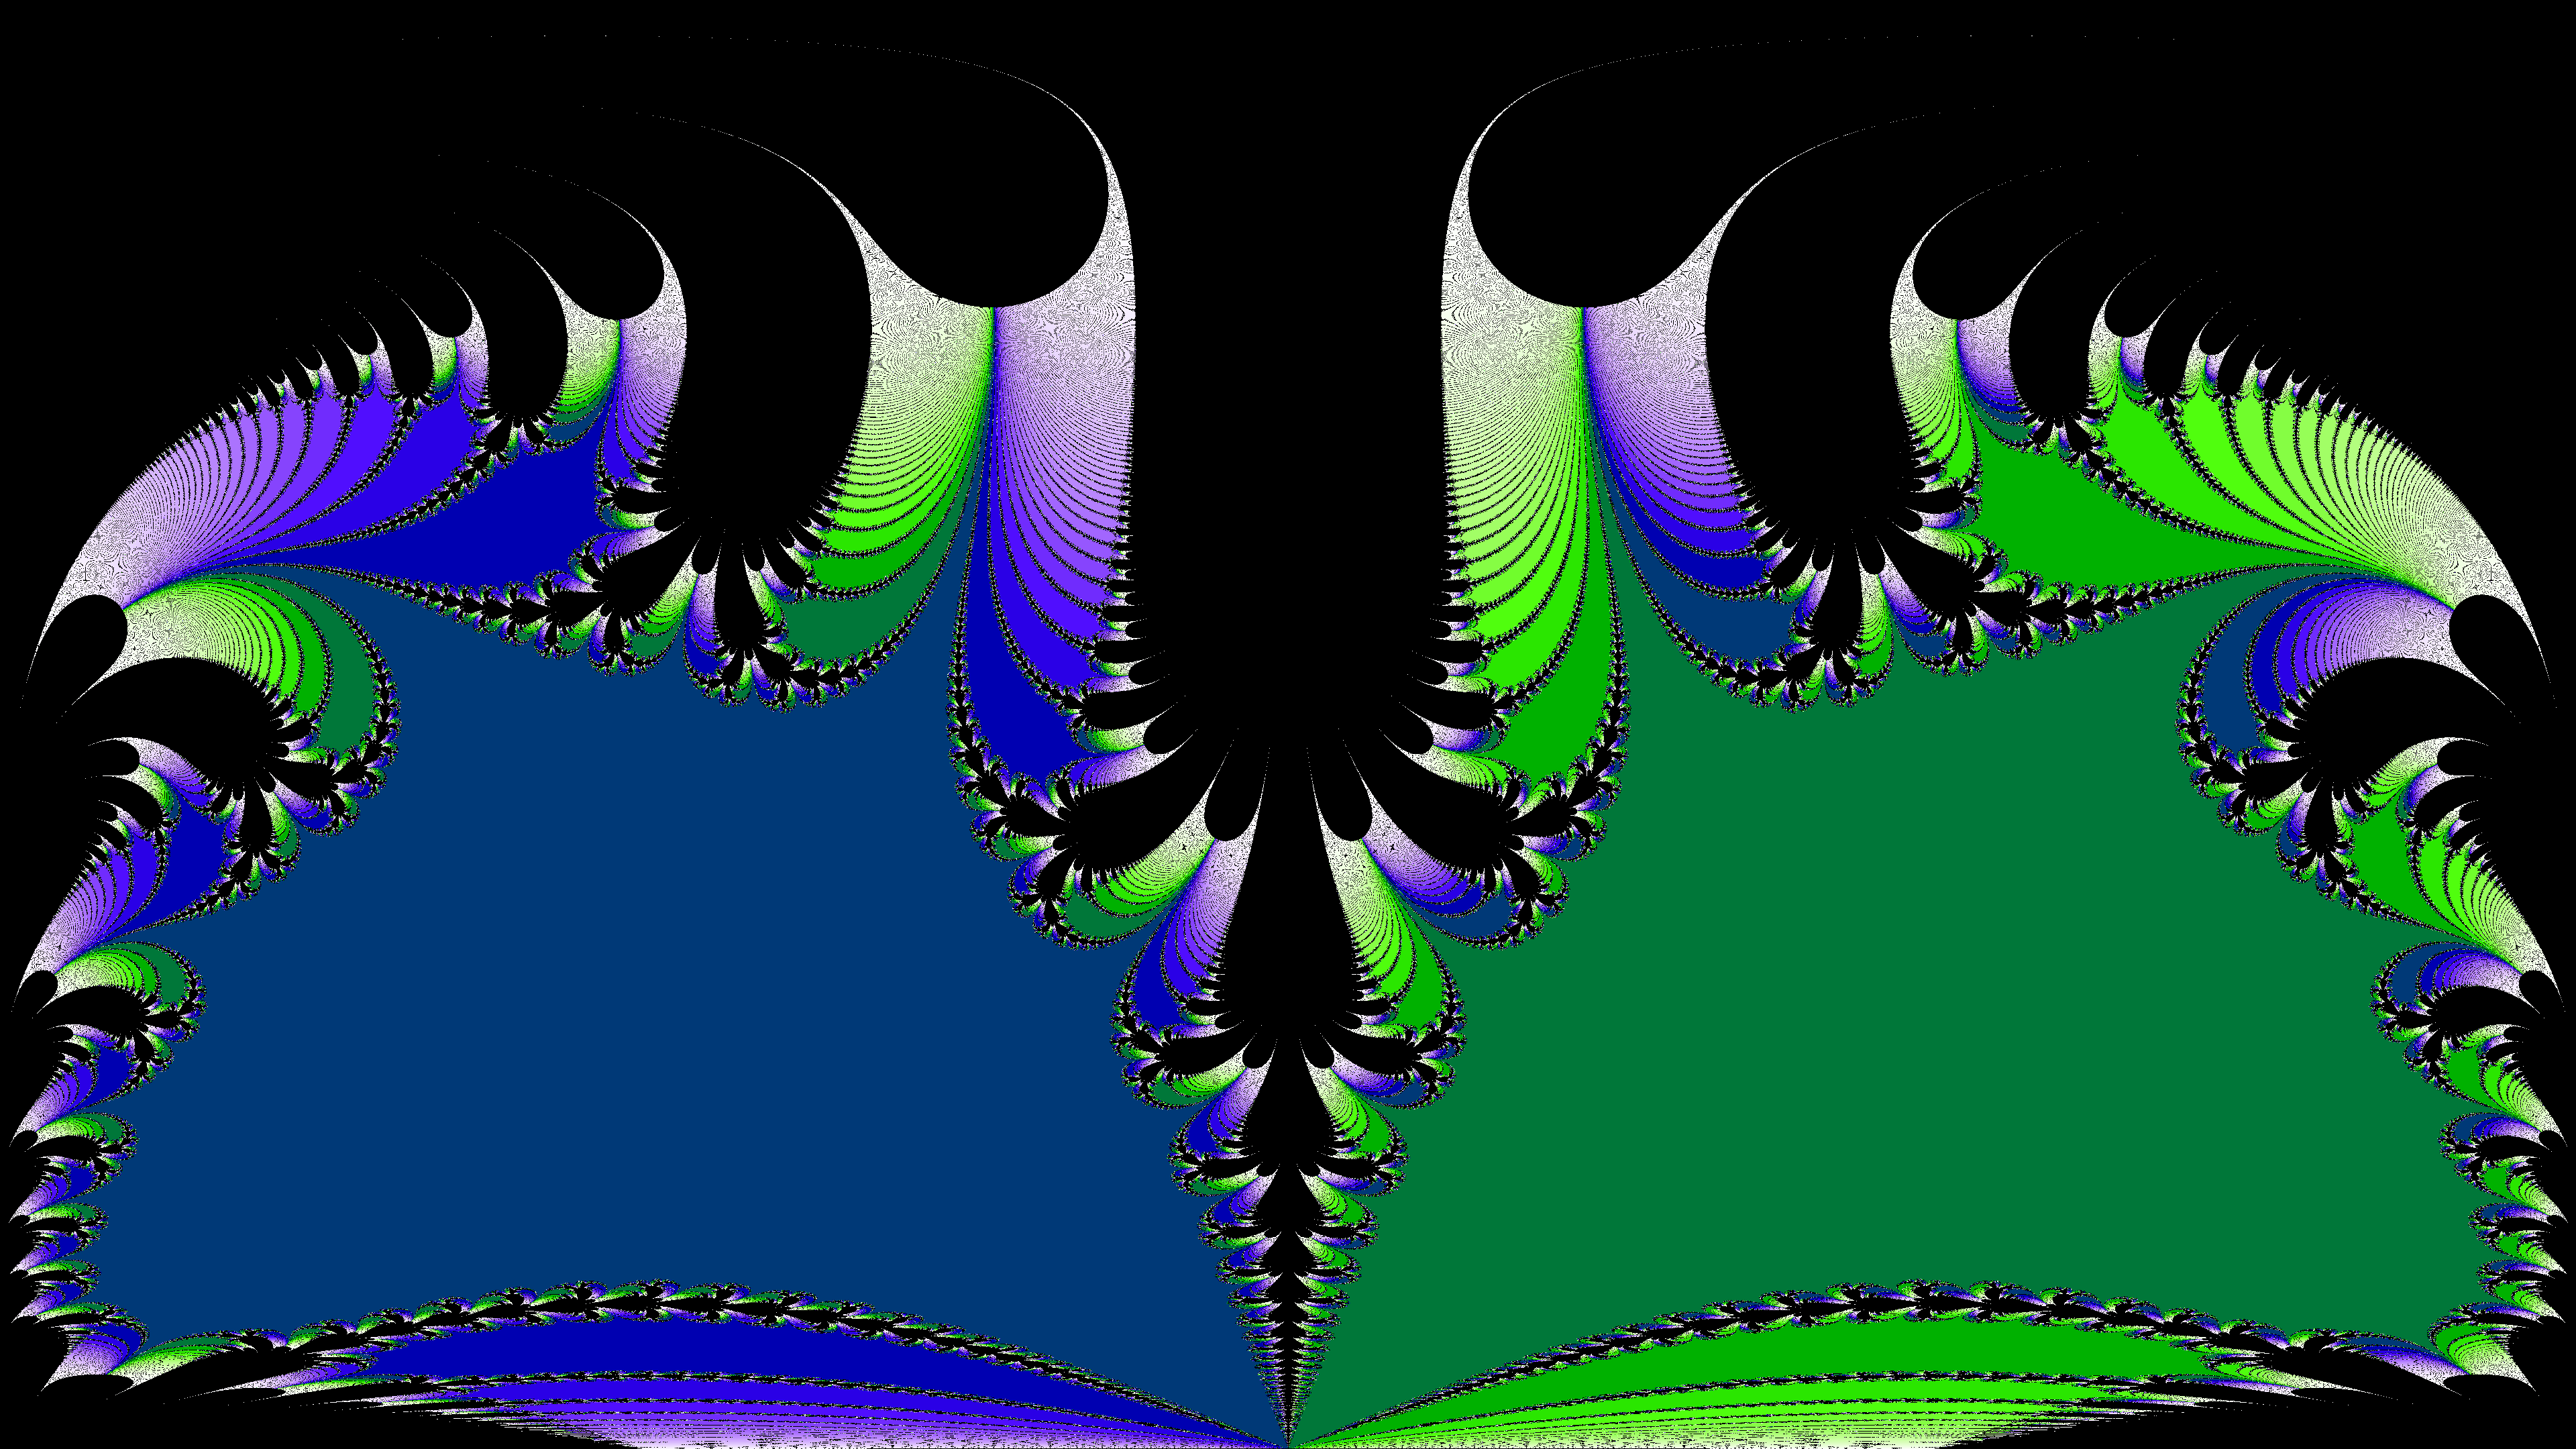 A newton fractal on the Riemann sphere shown using an equirectangular projection